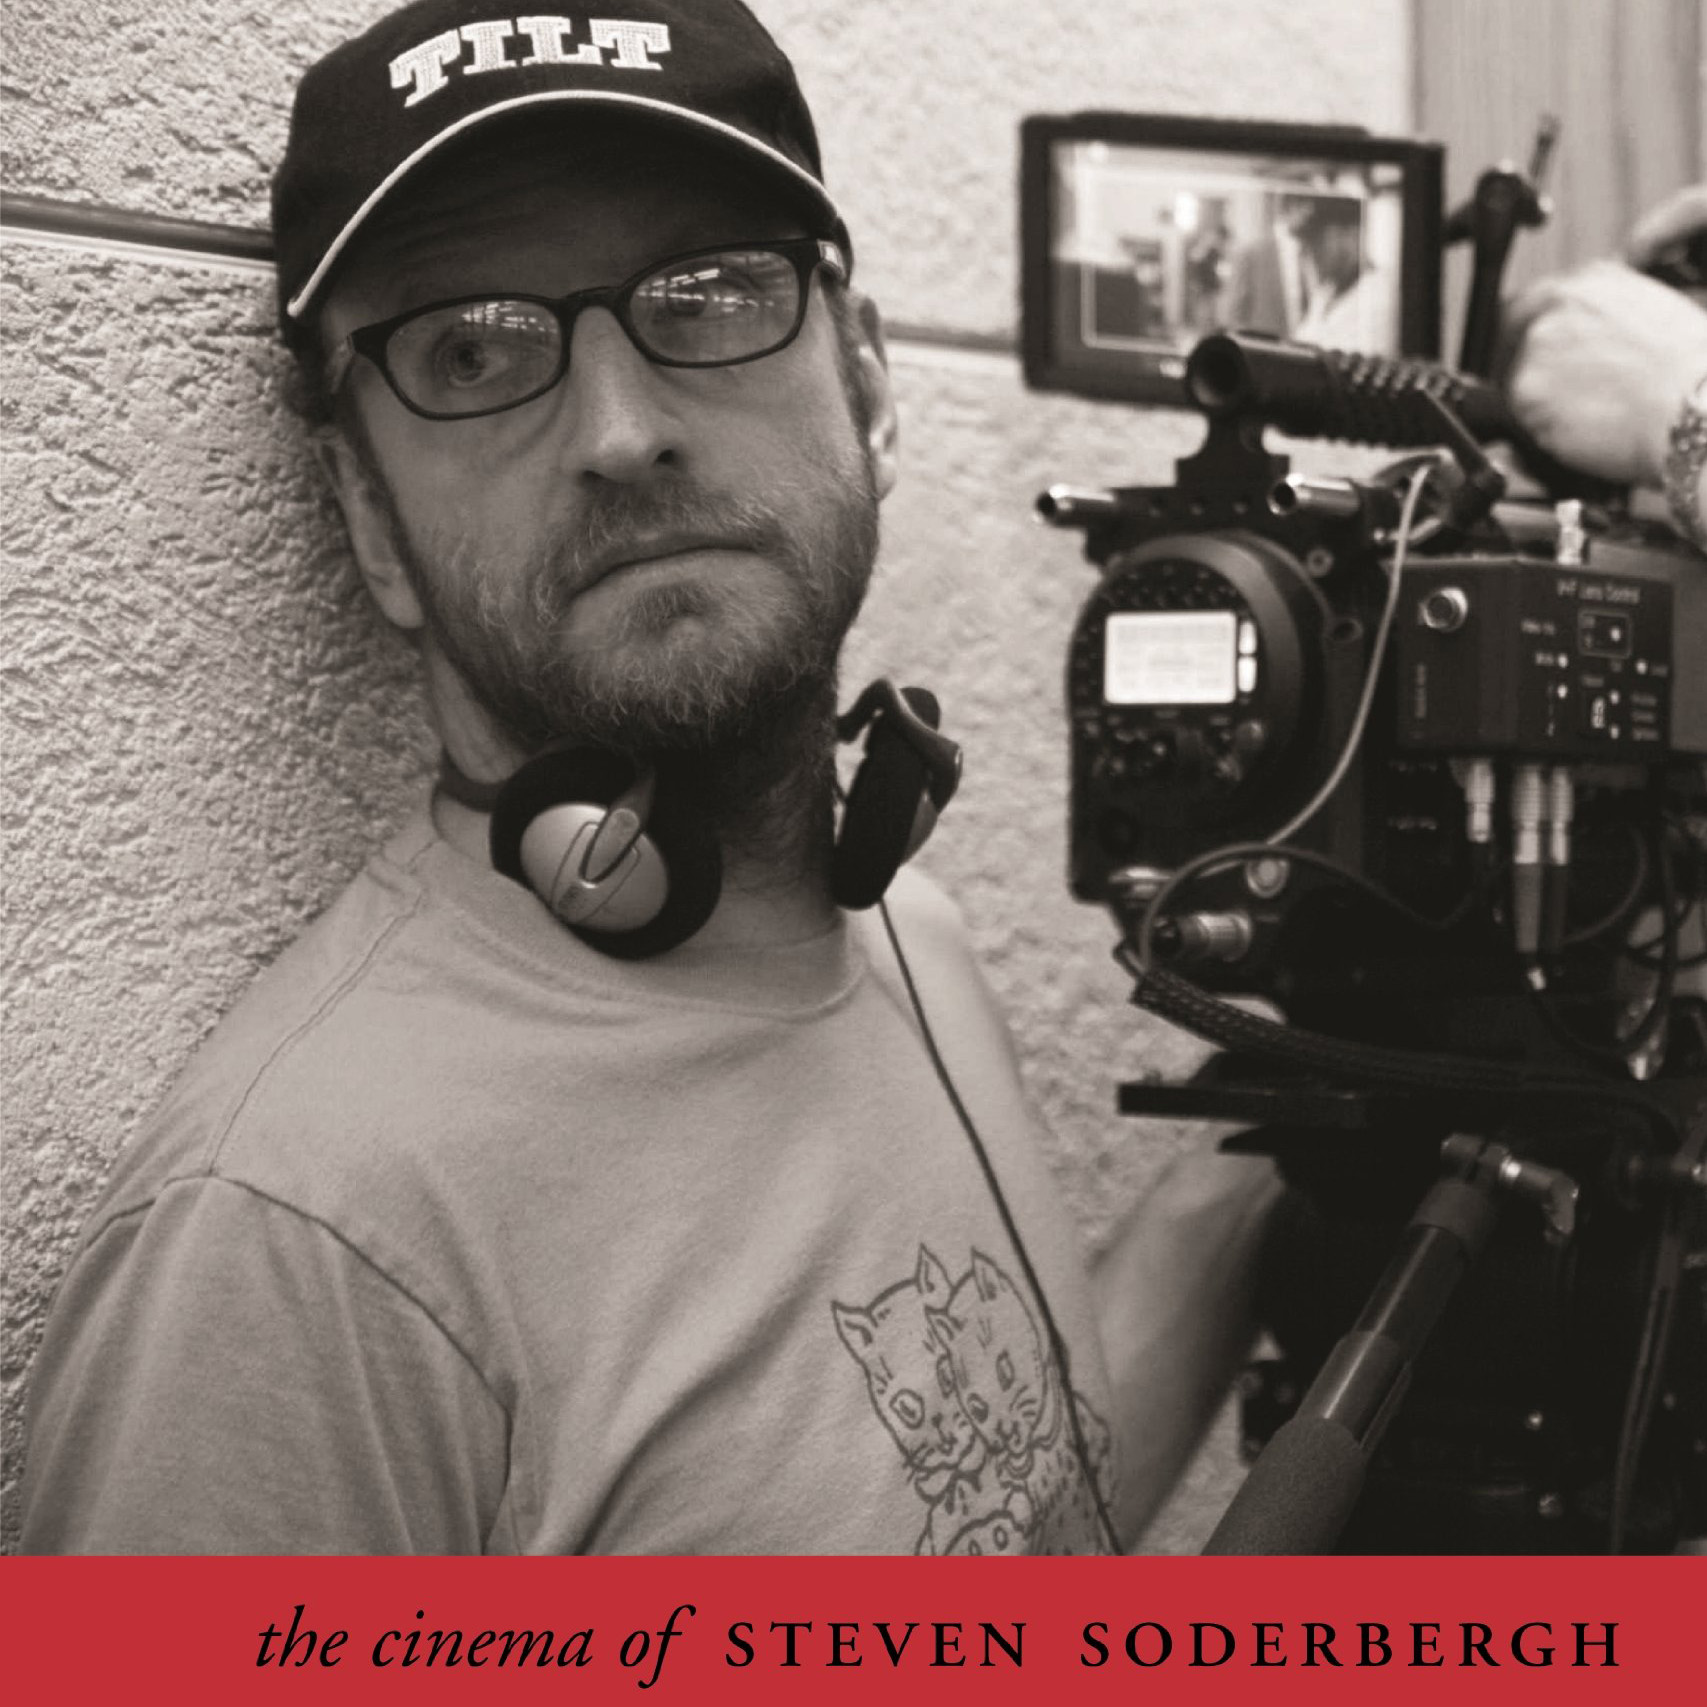 The Cinema of Steven Soderbergh